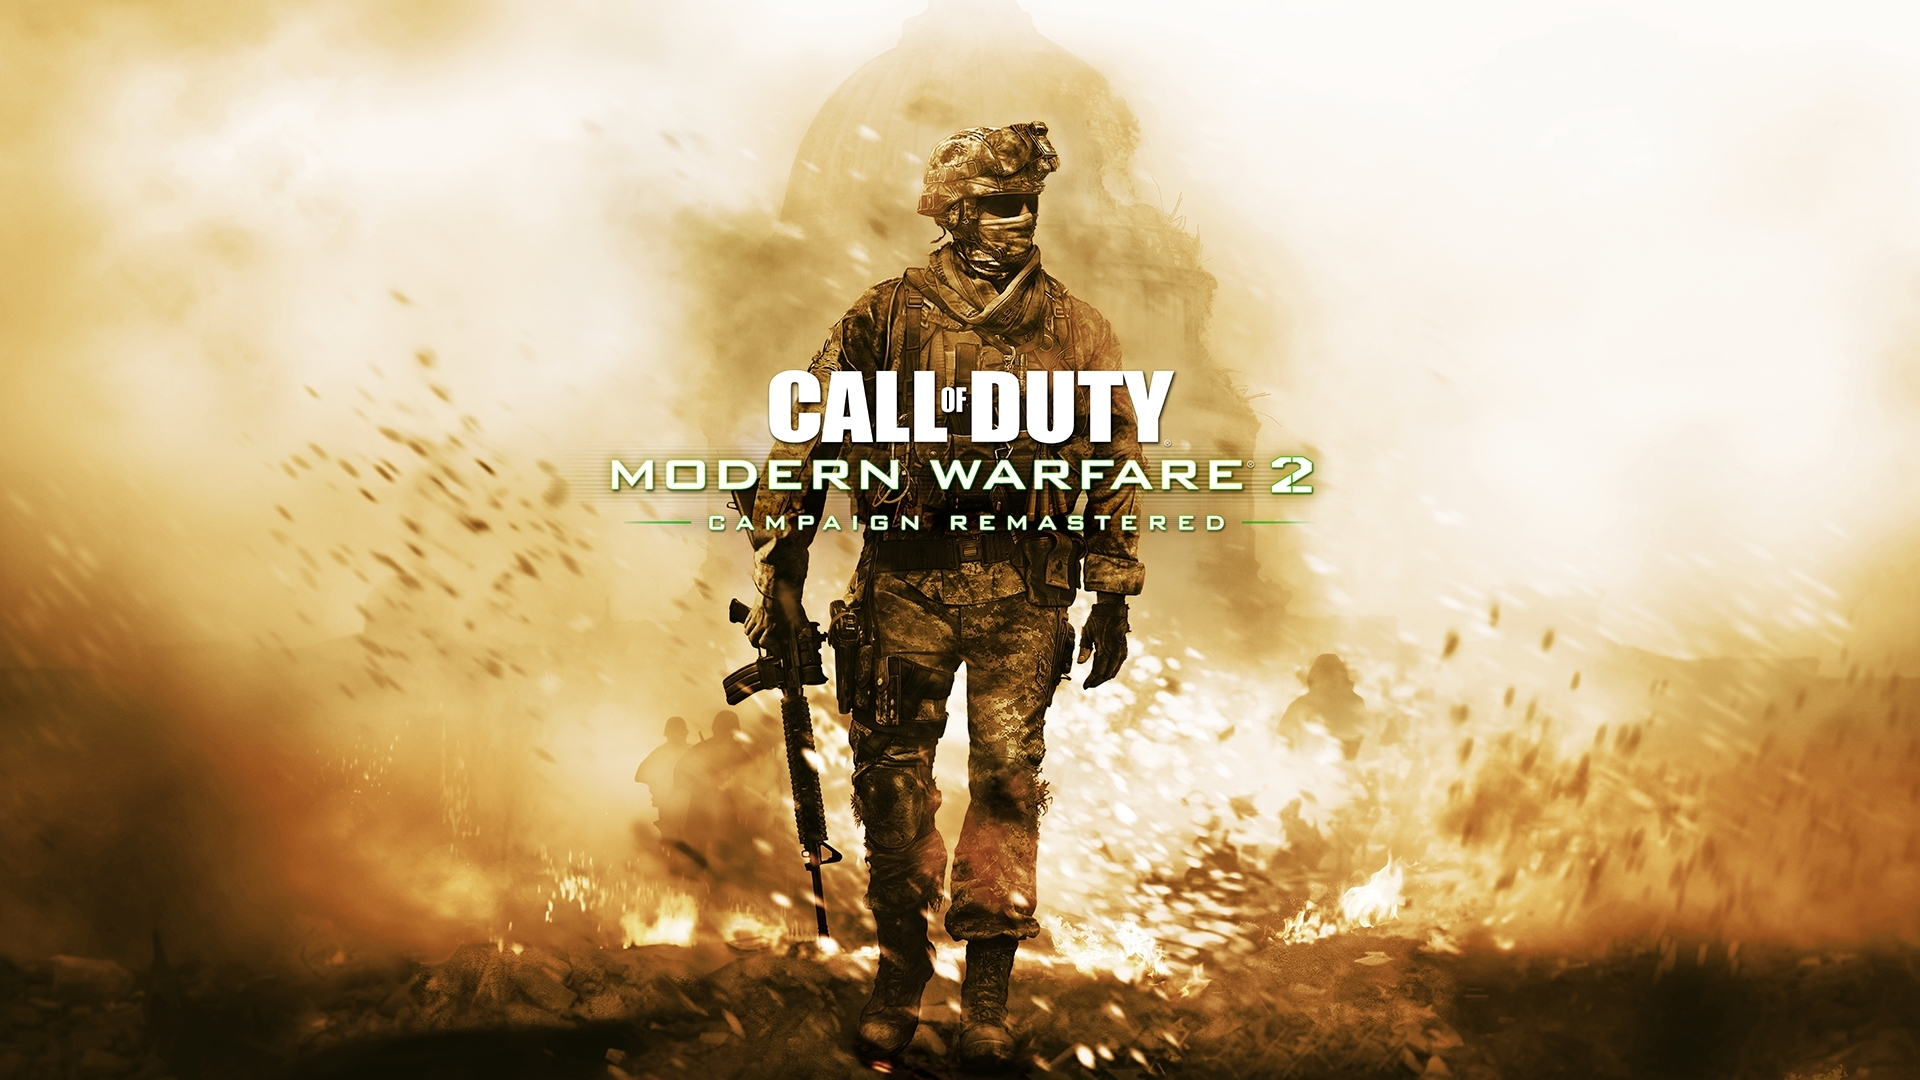 Call Of Duty Modern Warfare 2 Campaign Remastered Wallpaper Hd